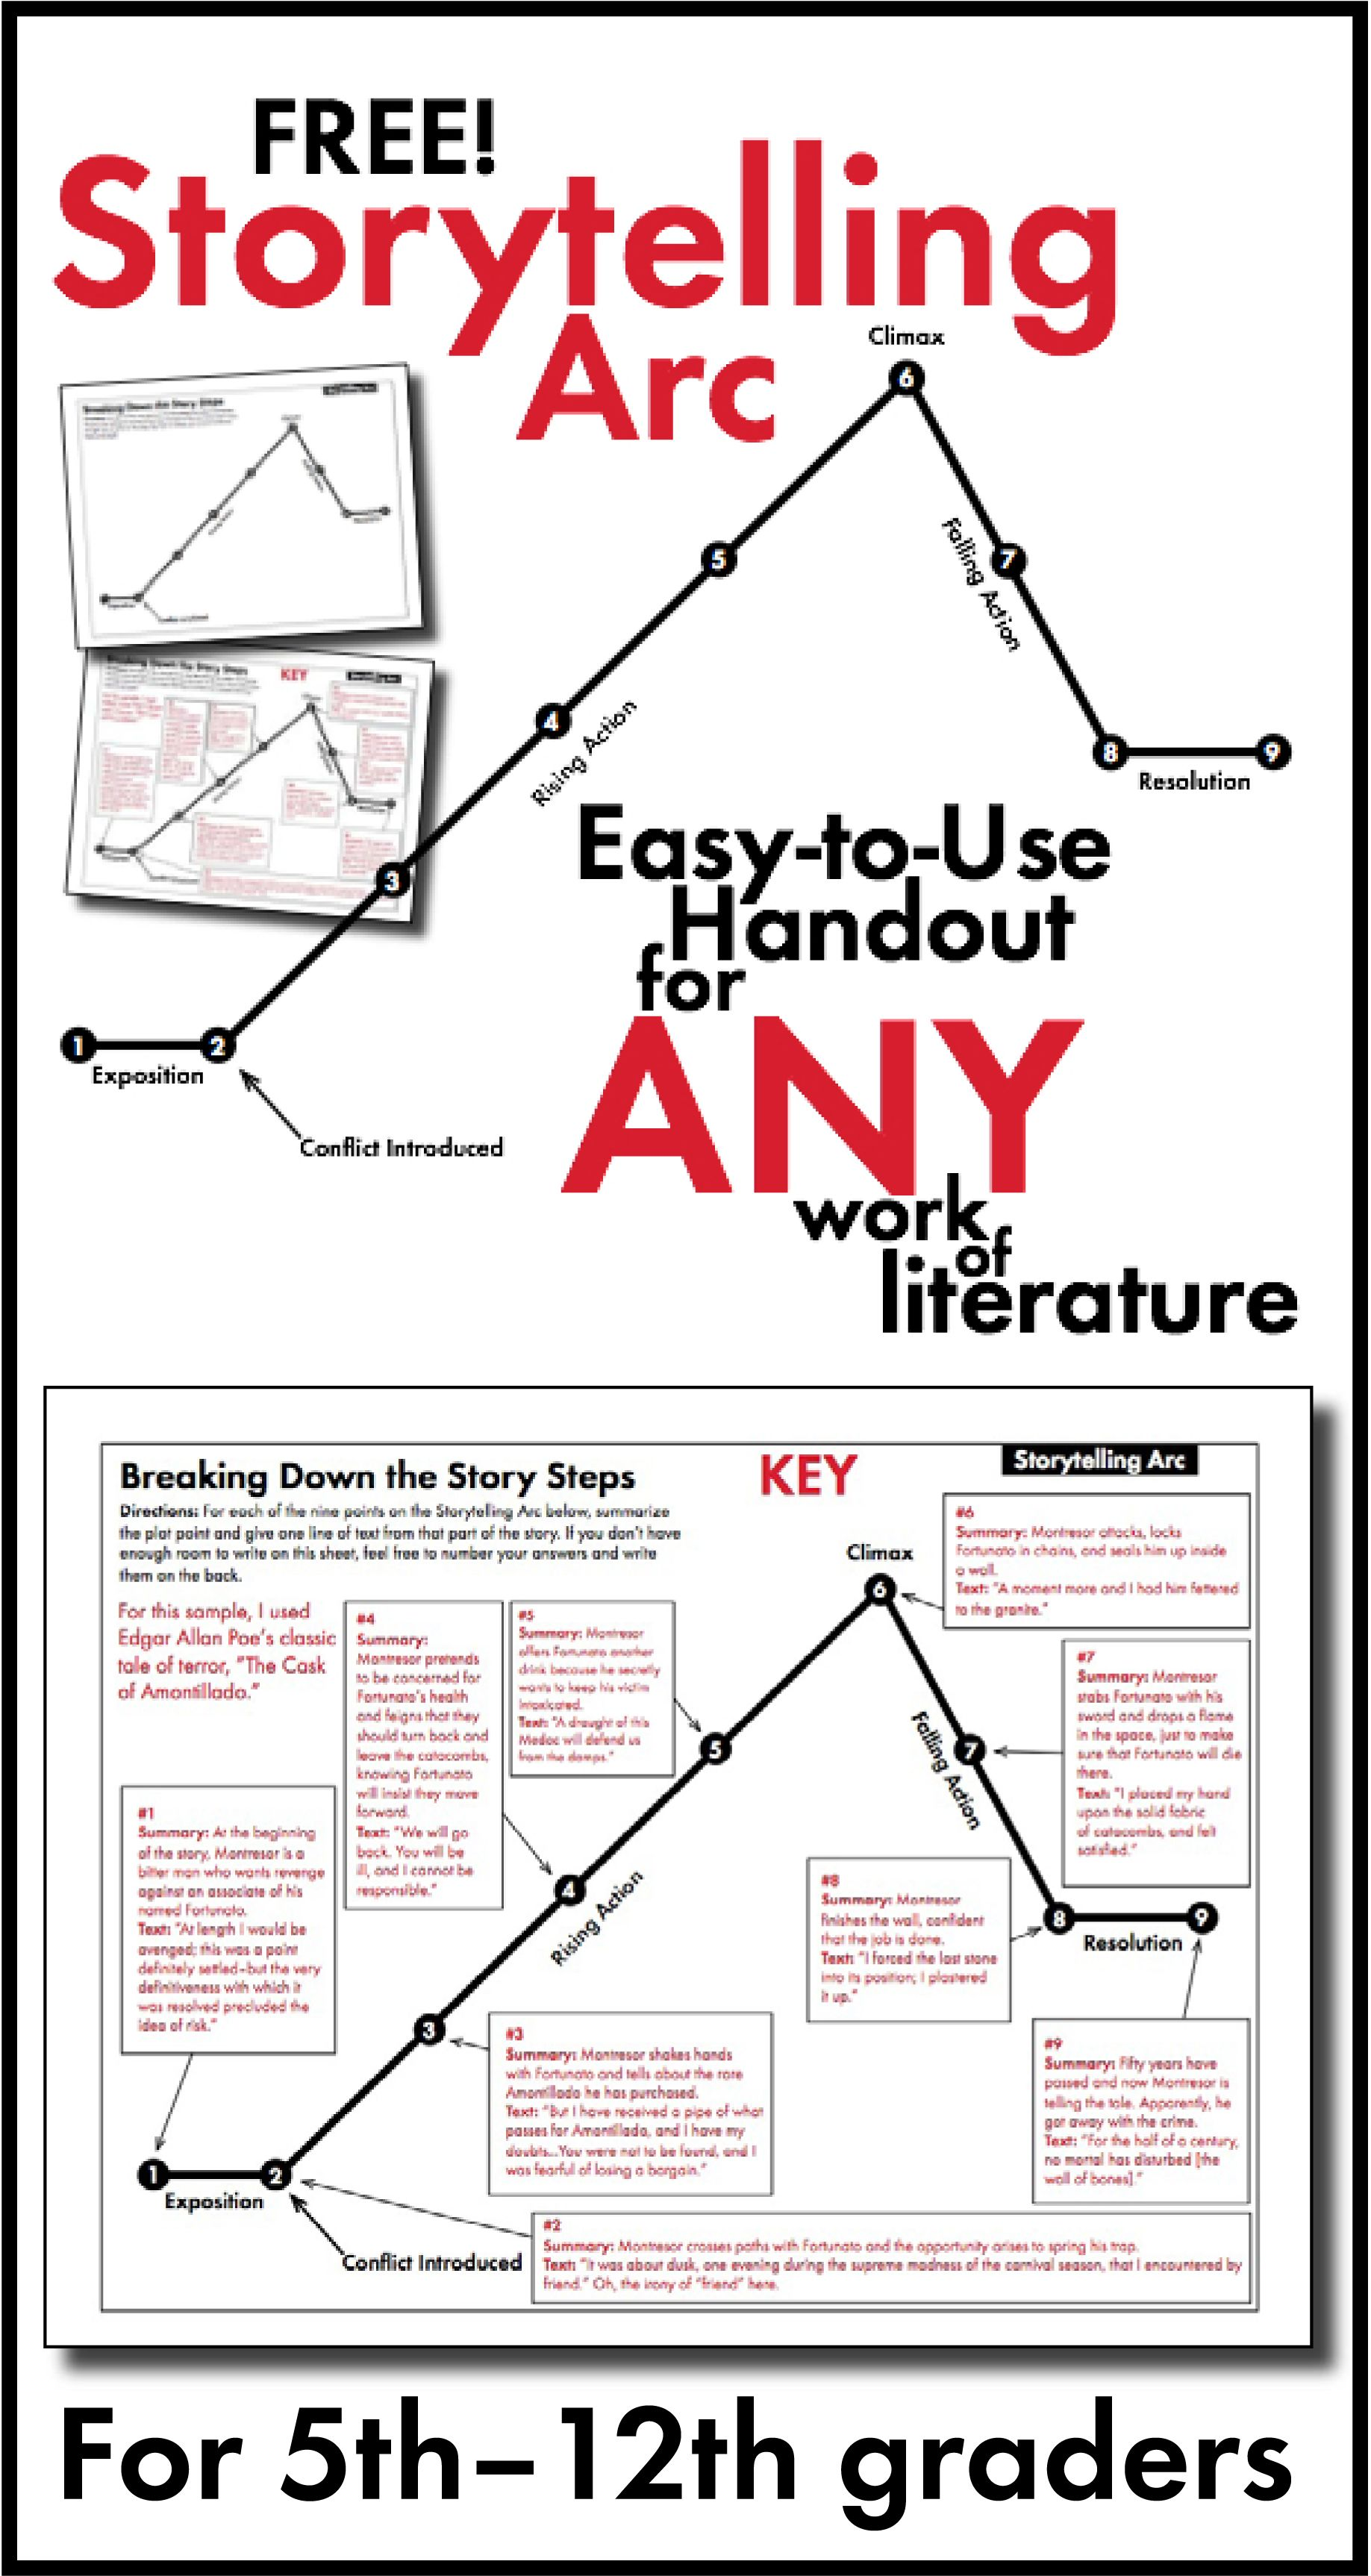 Use This Storytelling Arc Handout With Any Short Story